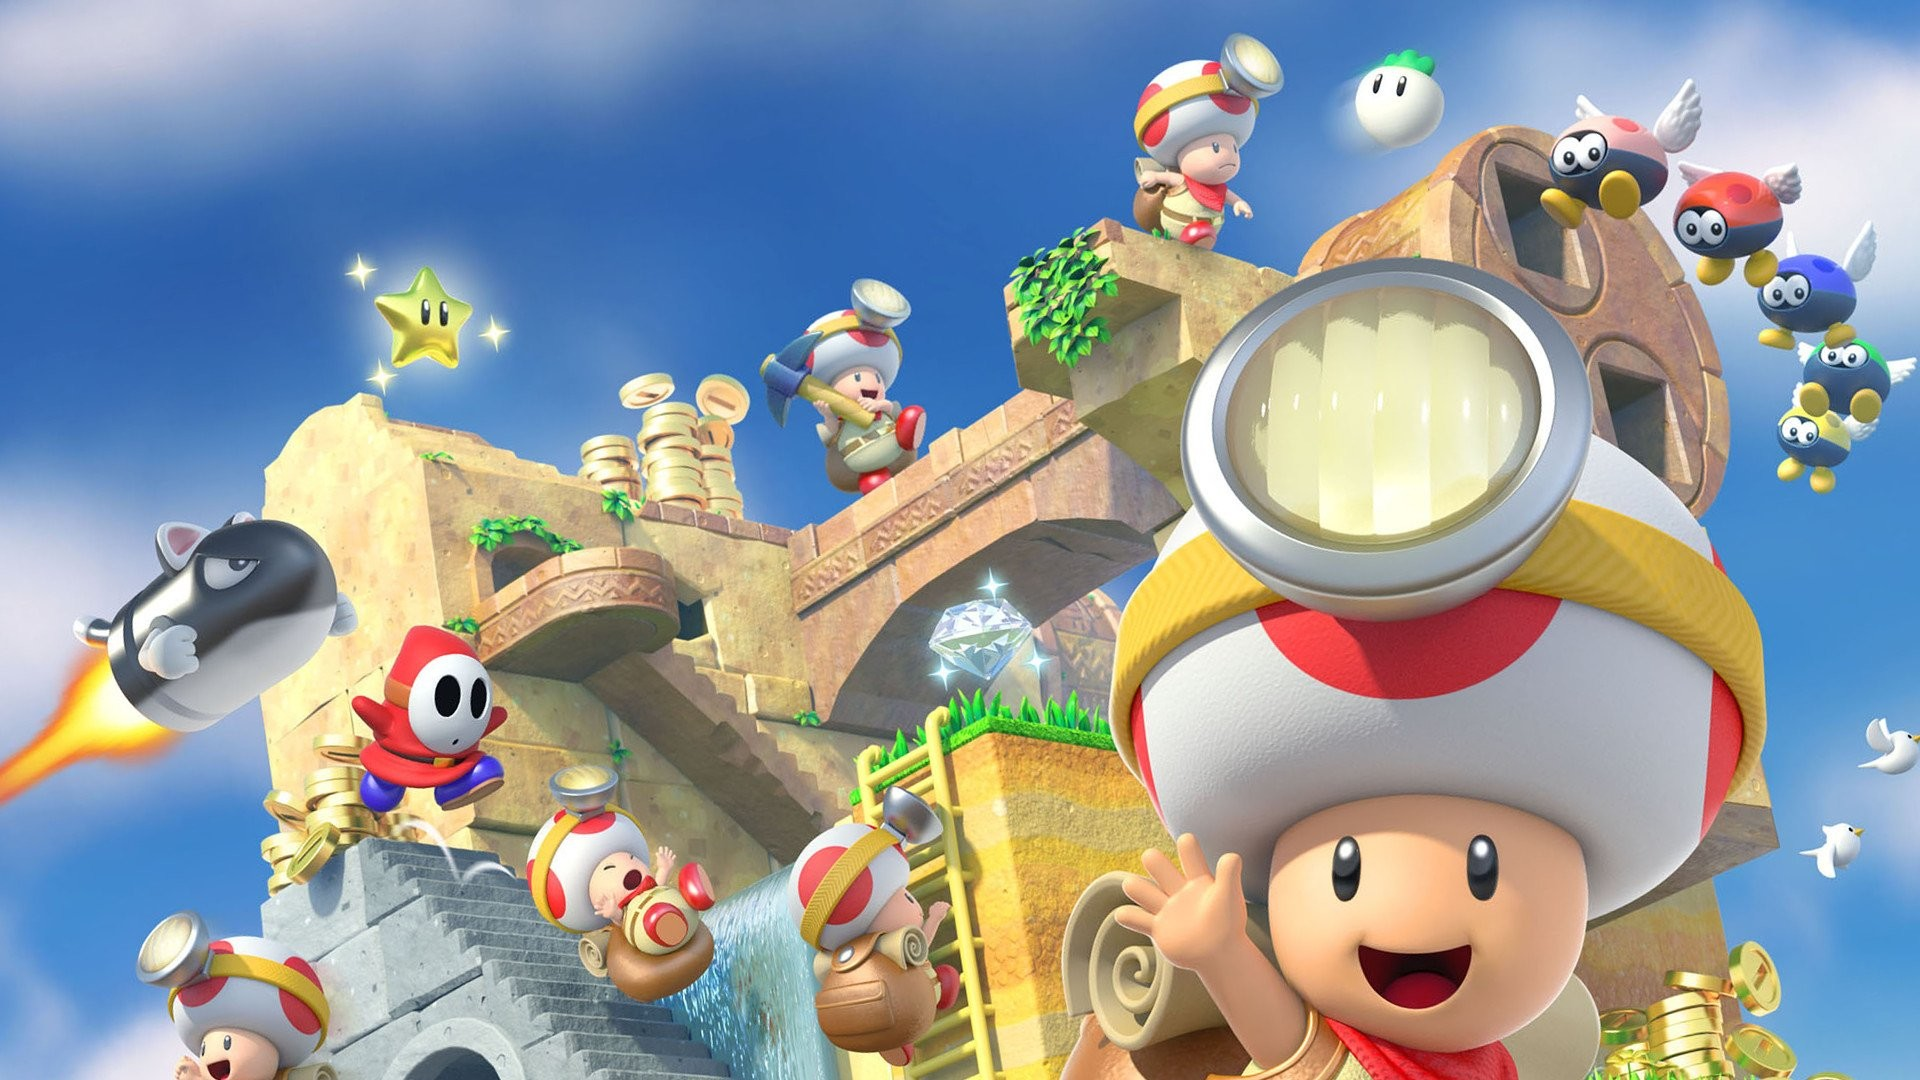 Toad Wallpaper 57 Images